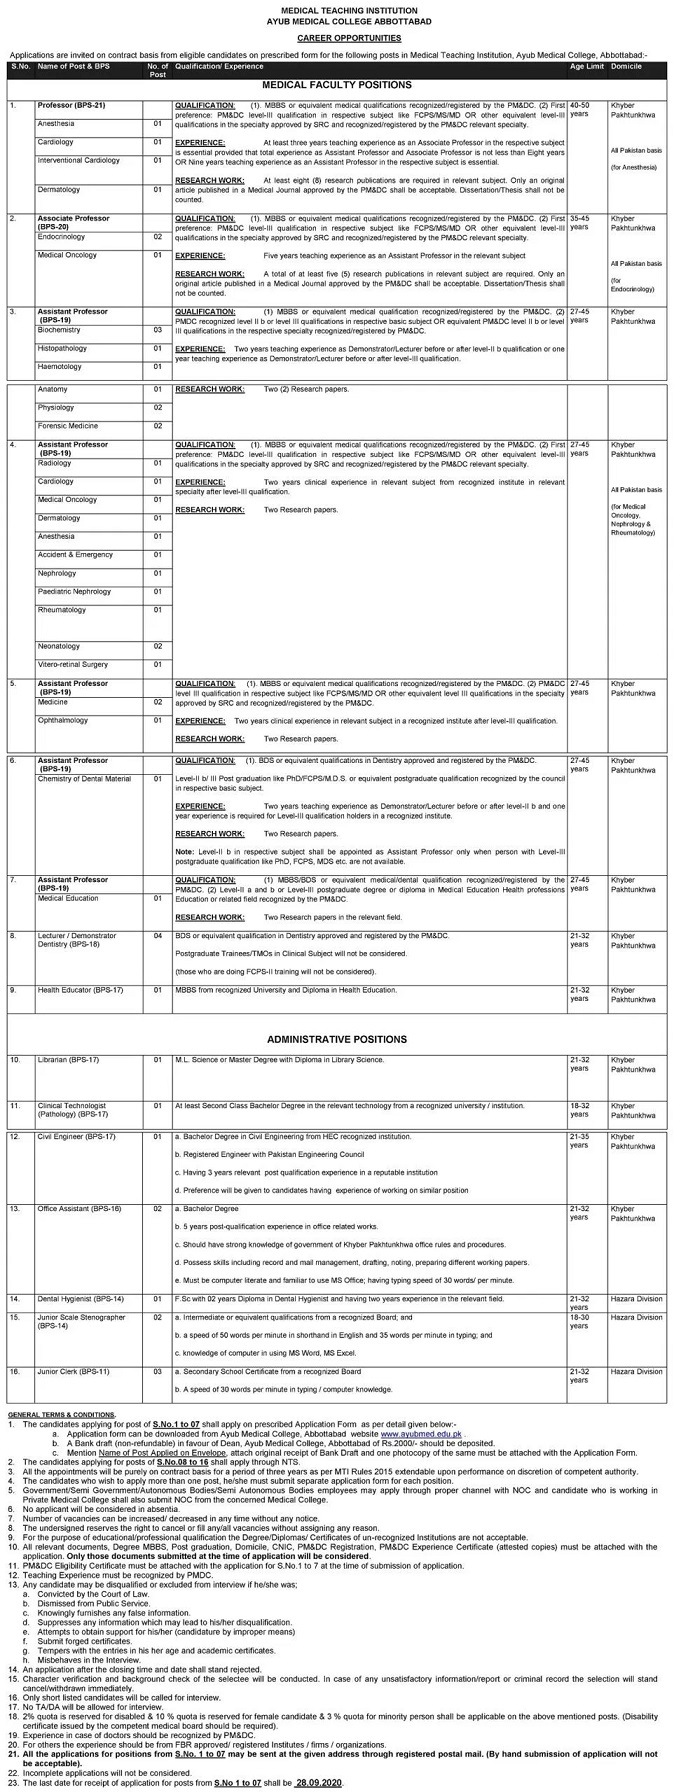 Medical Teaching Institution Ayub Medical College NTS Skill Test Result